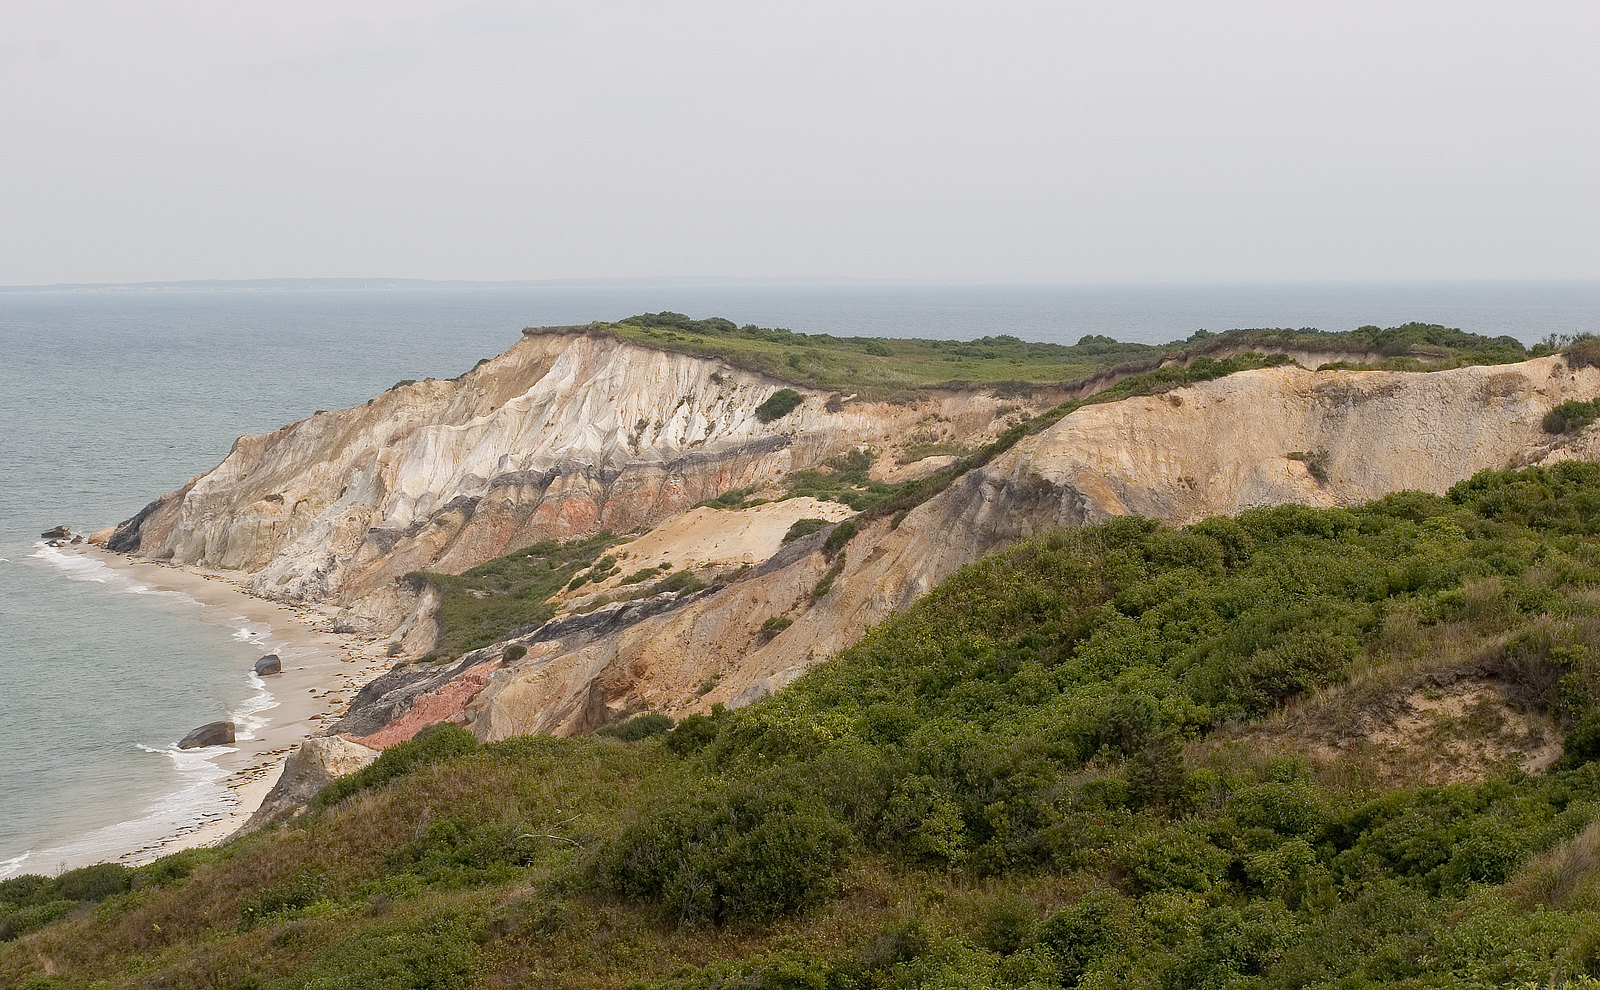 Moshup Beach in Aquinnah, USA